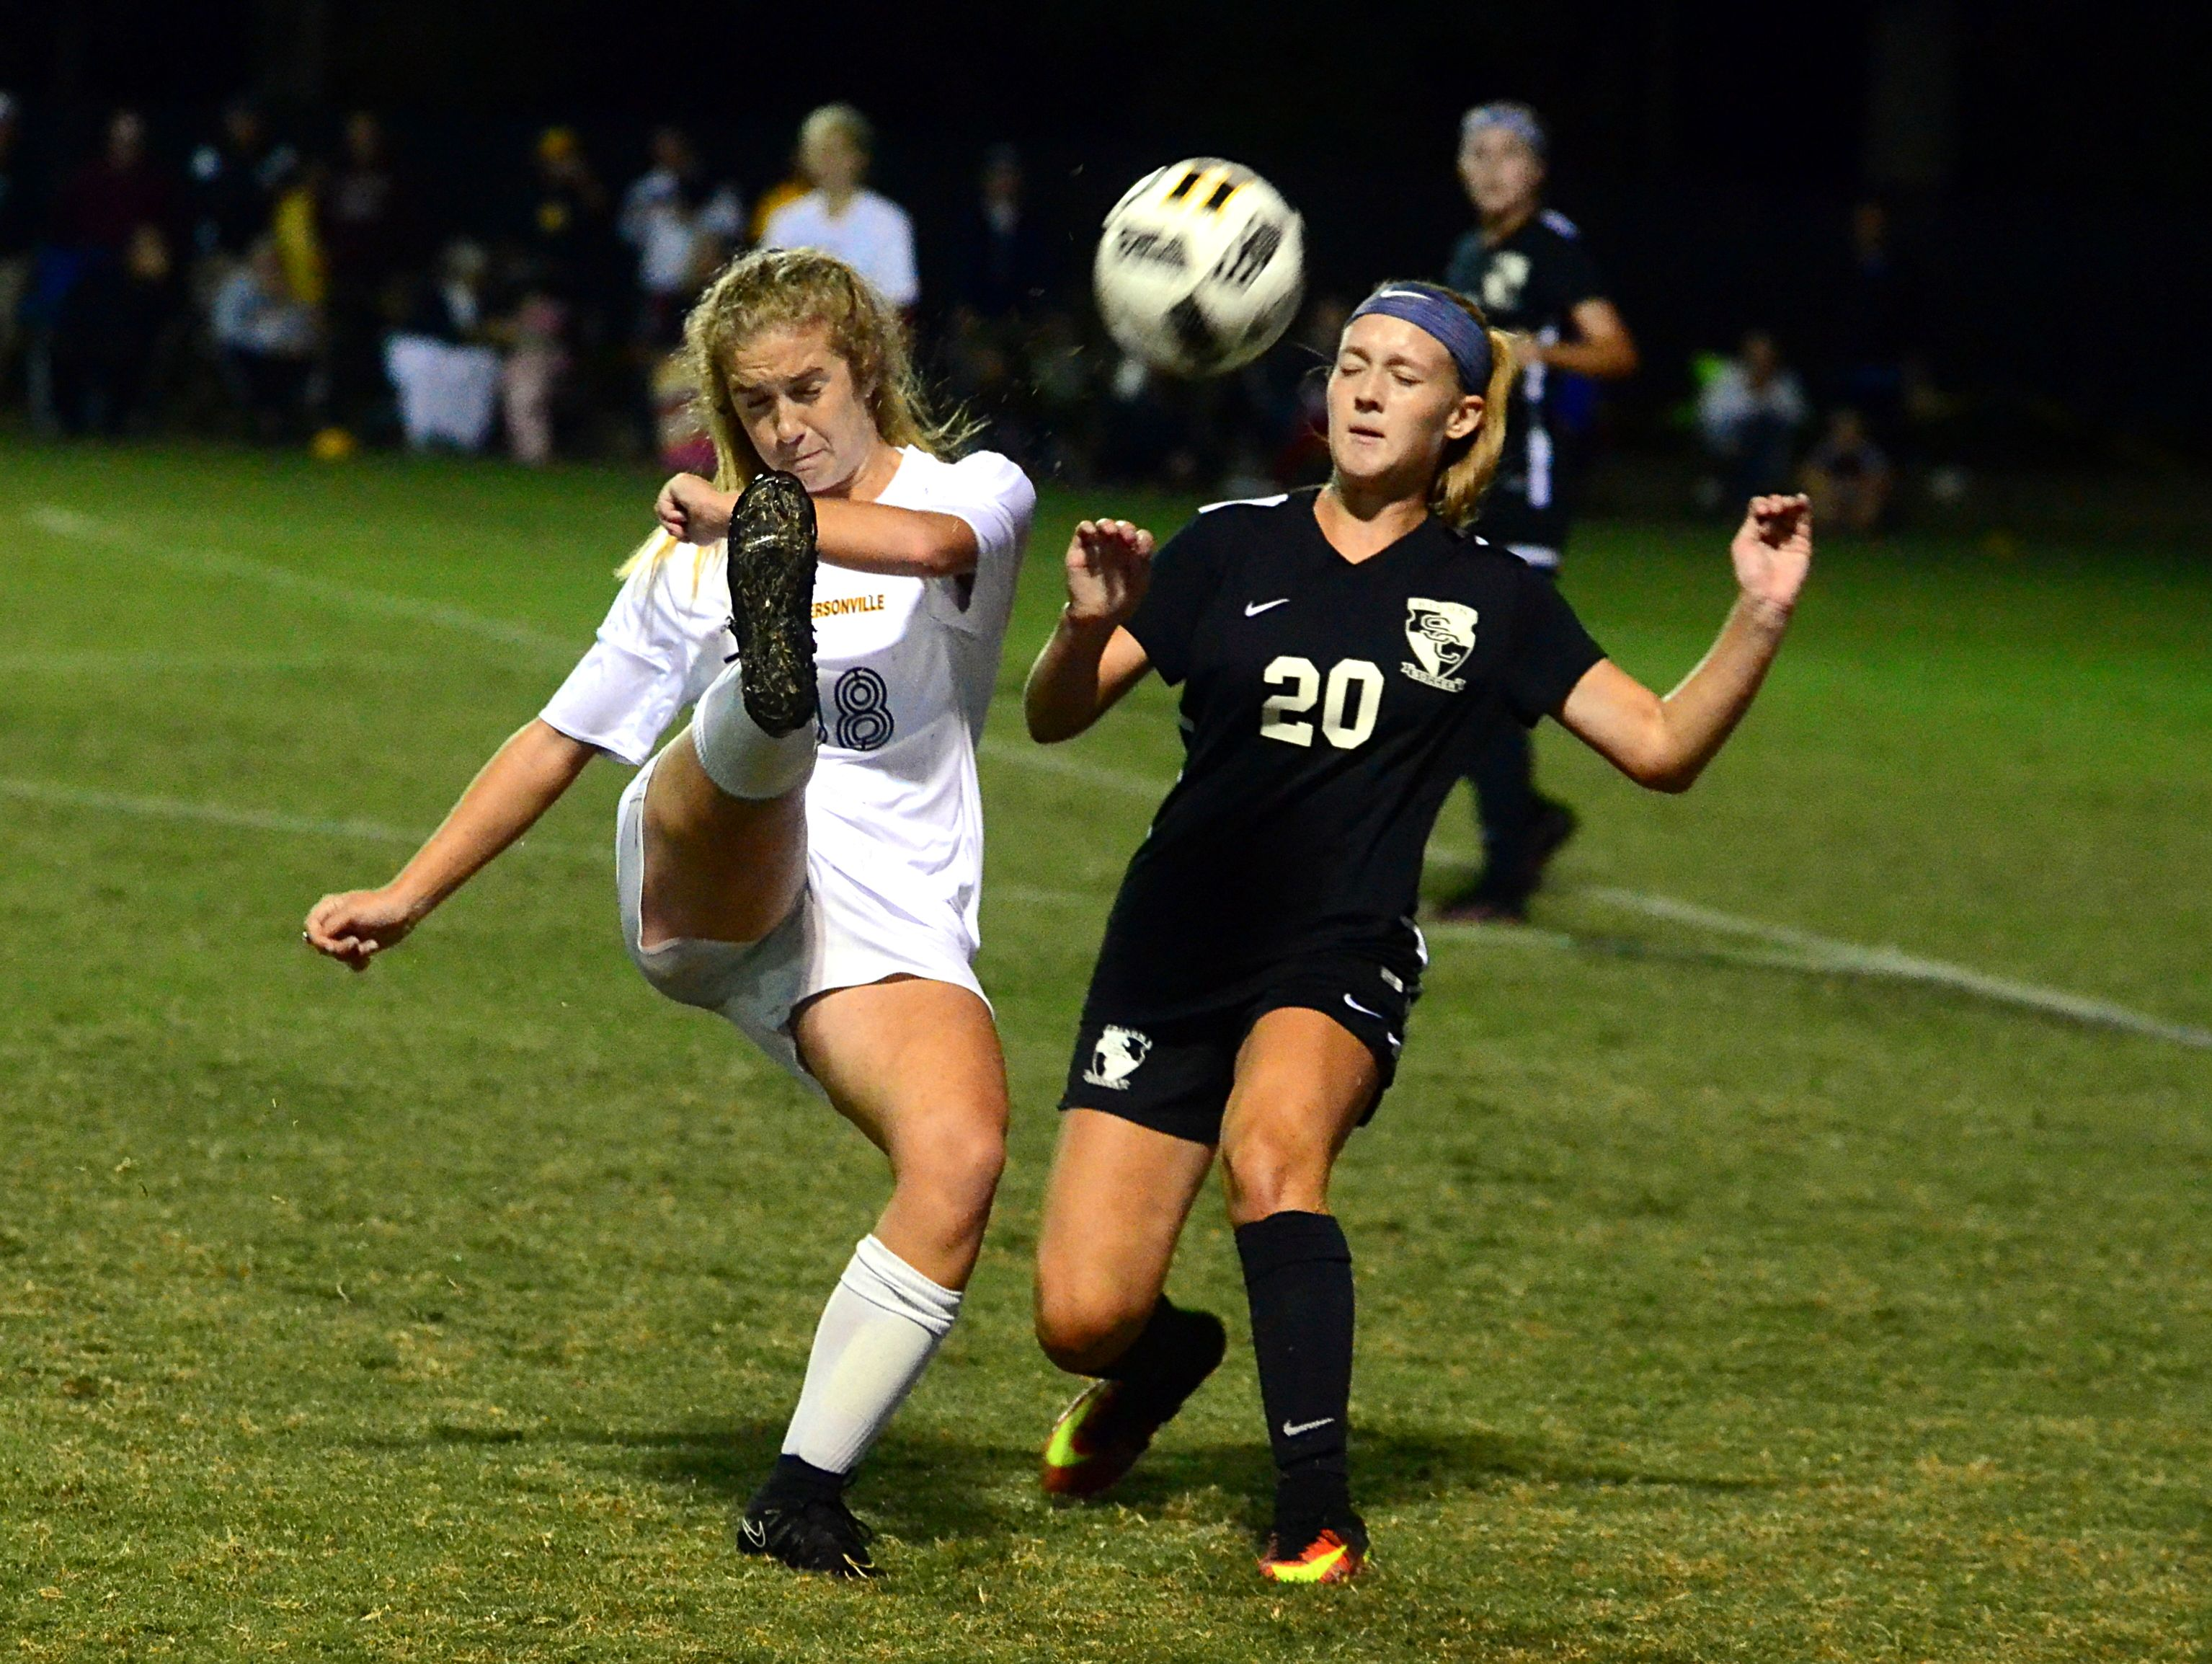 Hendersonville High junior Haley Stevens flicks the ball behind her over Station Camp sophomore Katie Koumiss during first-half action. Stevens scored the game-winning penalty kick in the shootout.